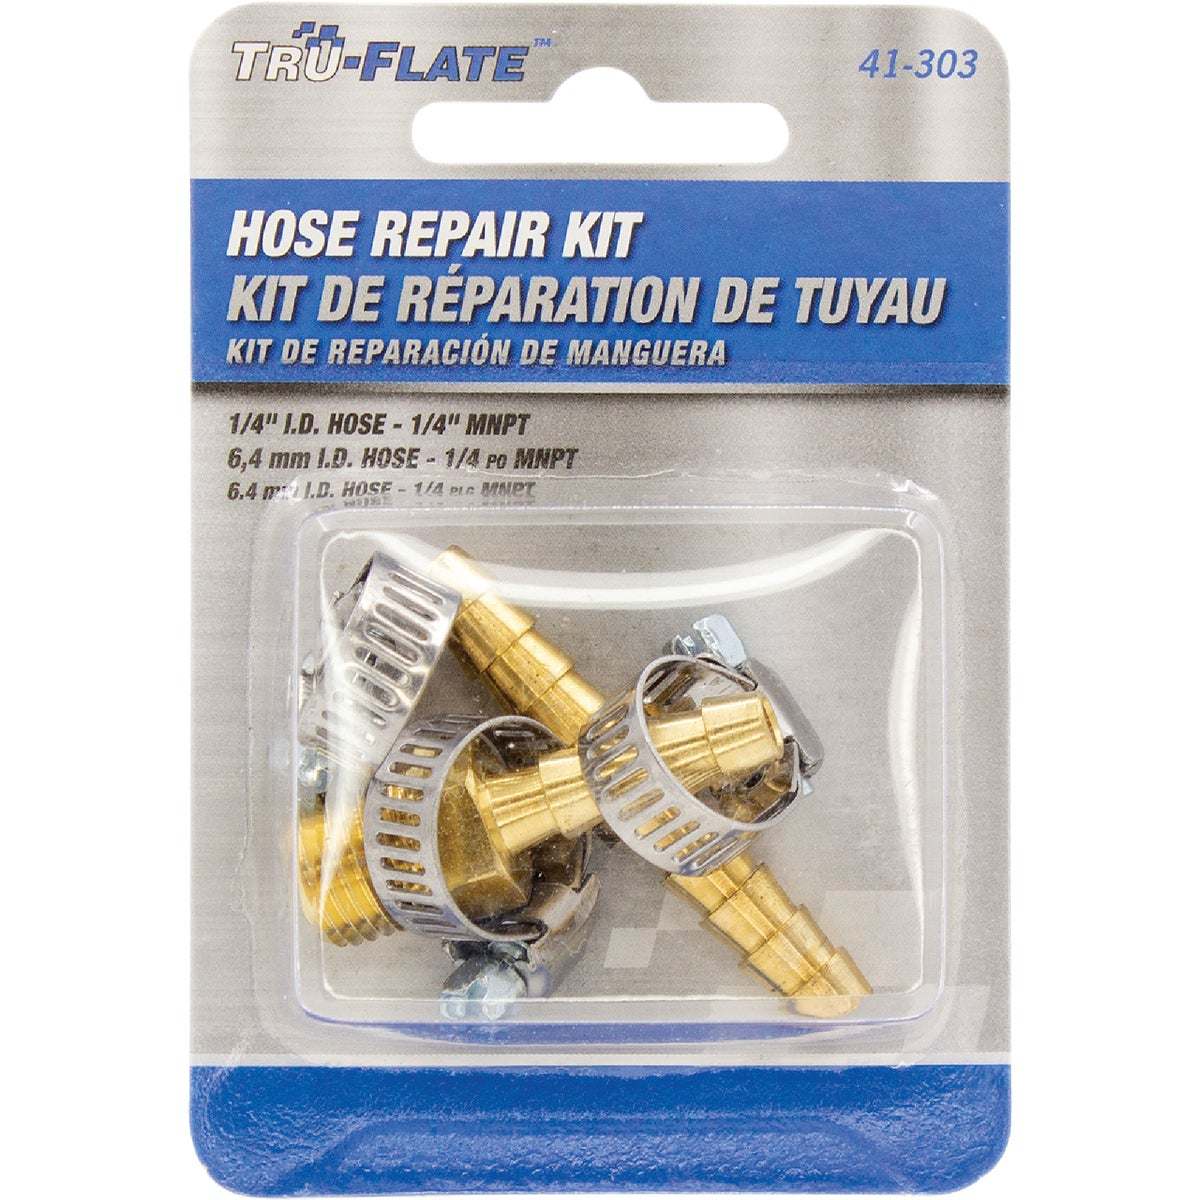 HOSE REPAIR KIT - 41-300 by Plews  Lubrimatic